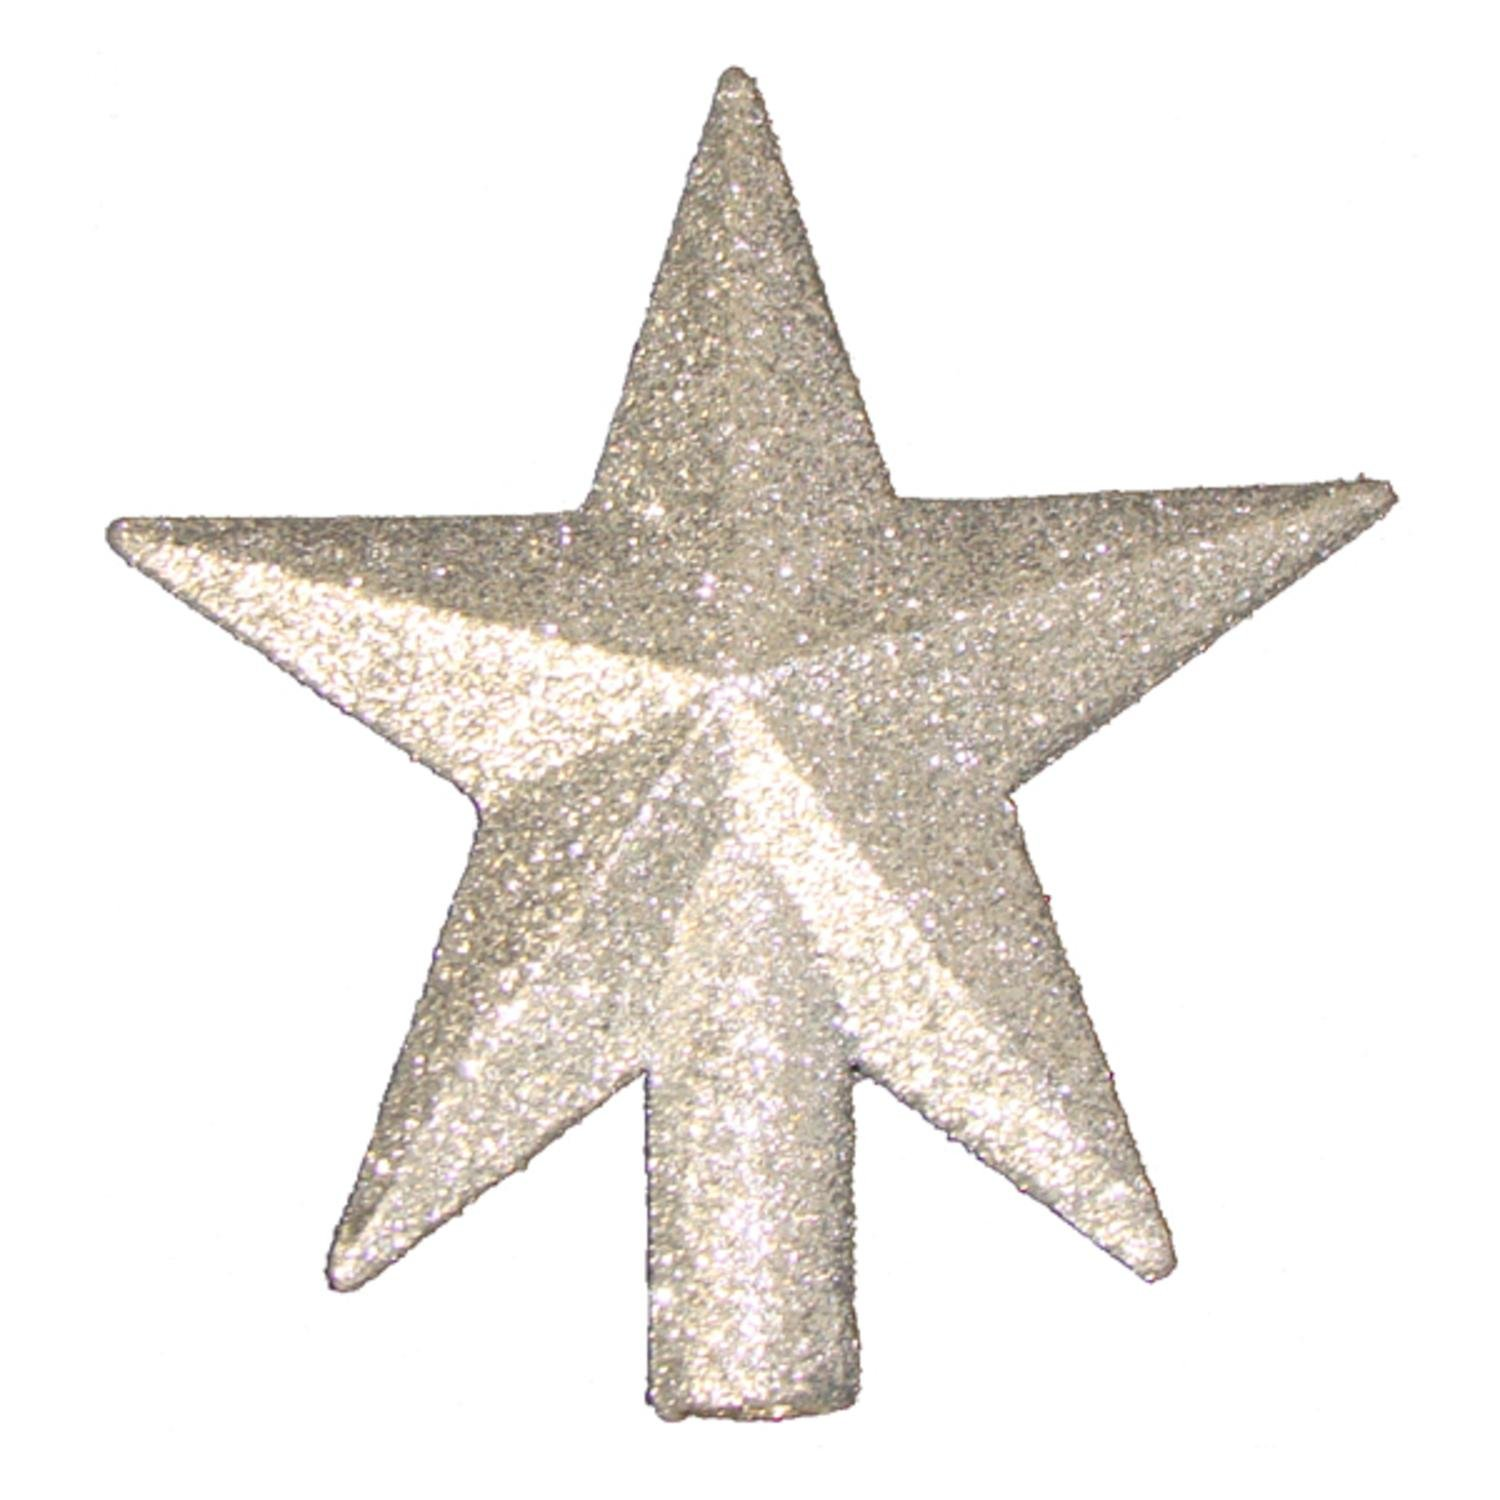 Star For A Christmas Tree: Beautiful Star Christmas Tree Toppers For A Dazzling